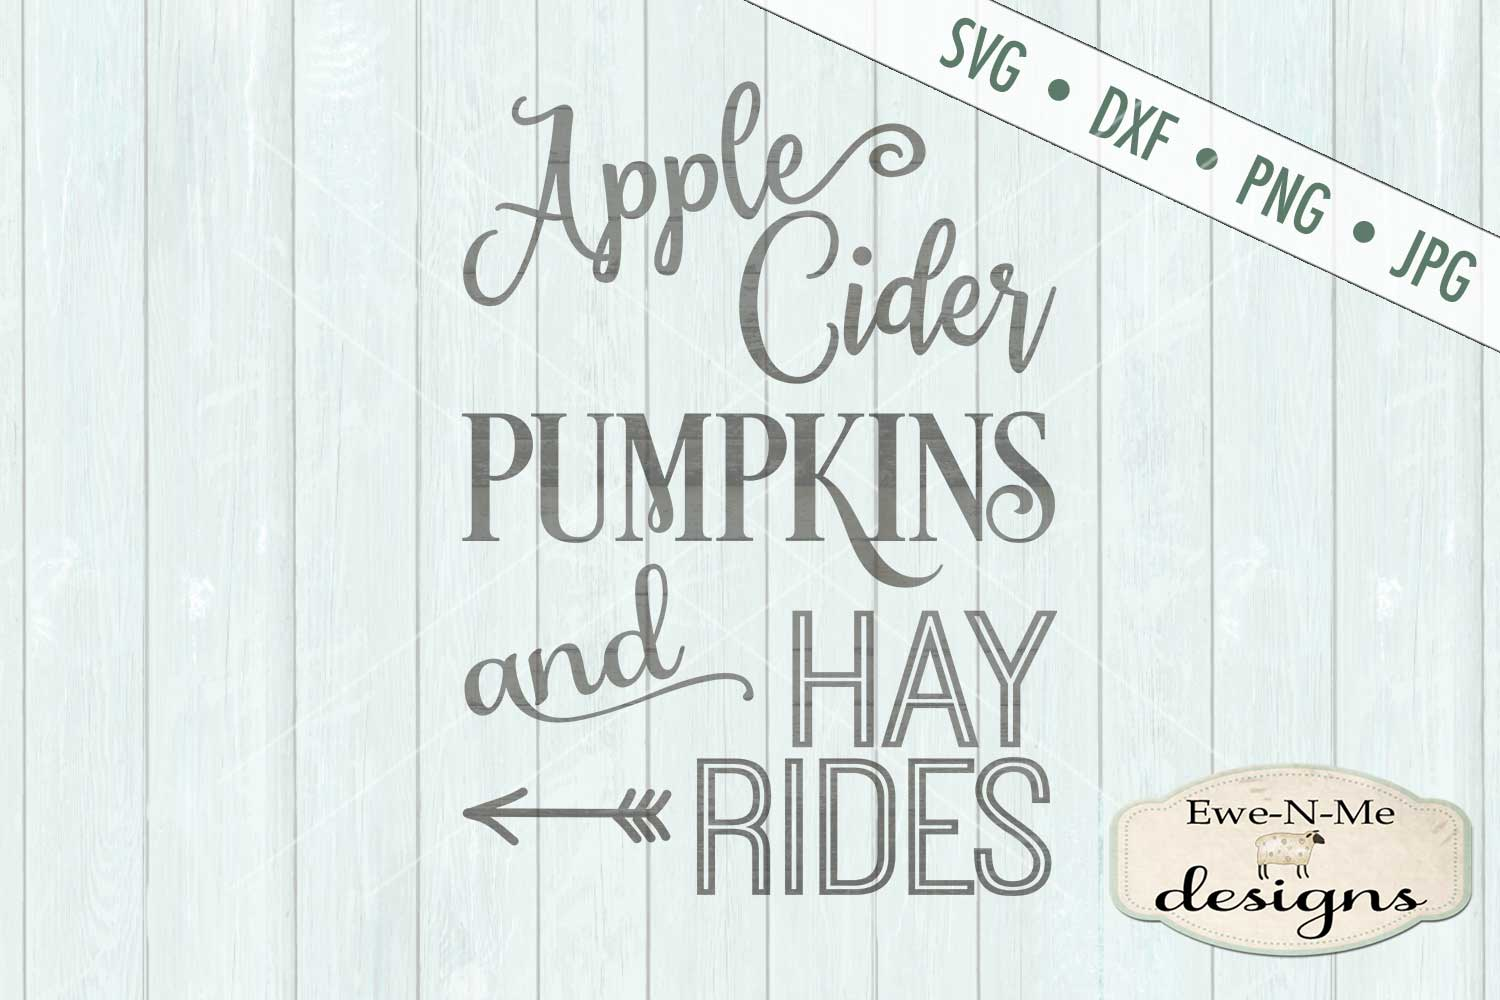 Apple Cider Pumpkins Hay Rides Fall Autumn SVG DXF Files example image 2